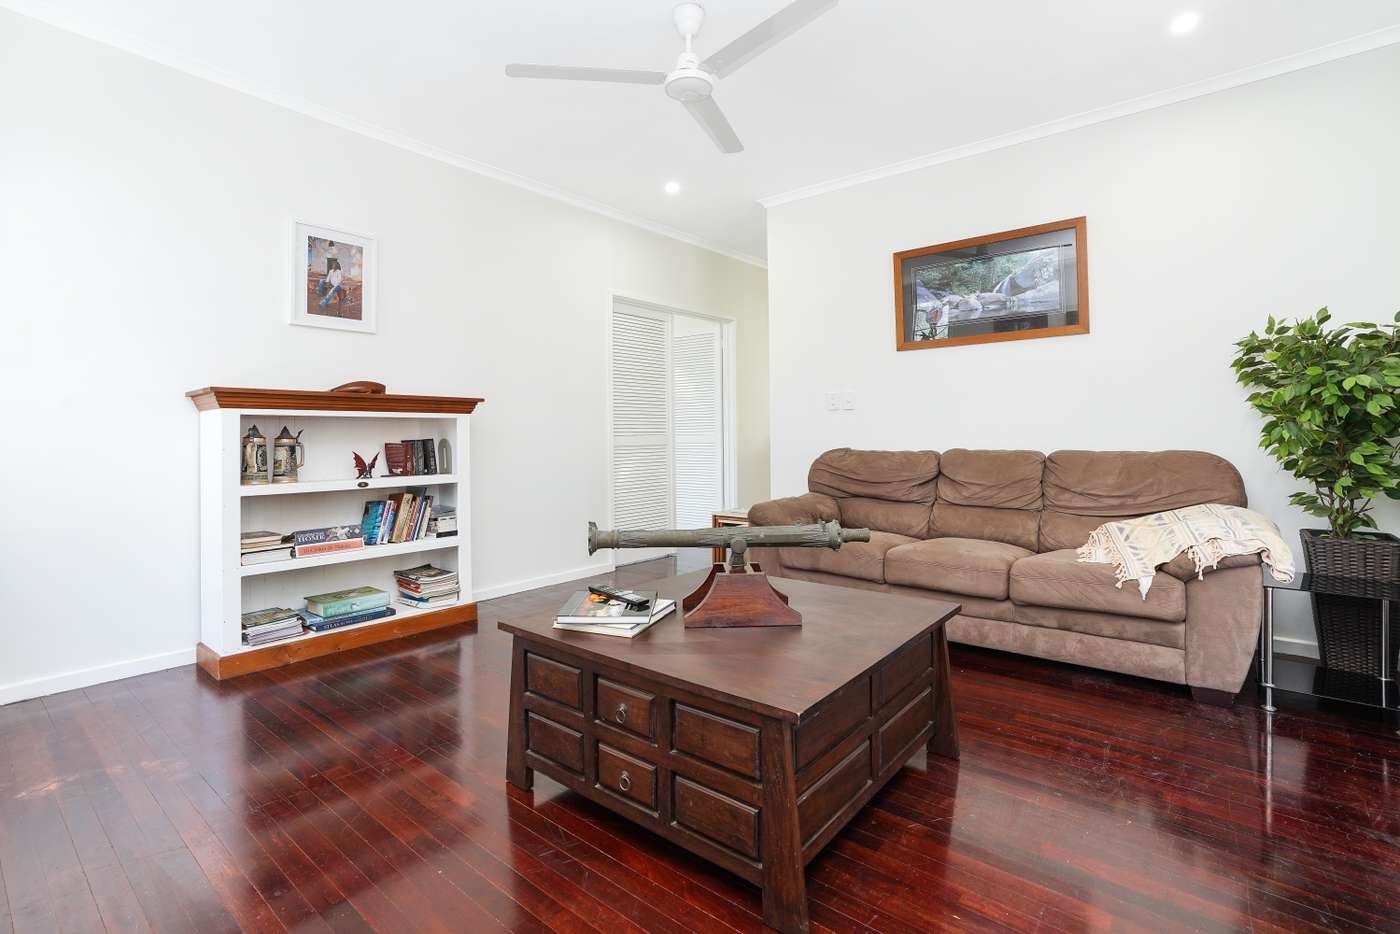 Fifth view of Homely house listing, 10 Croker Street, Nakara NT 810